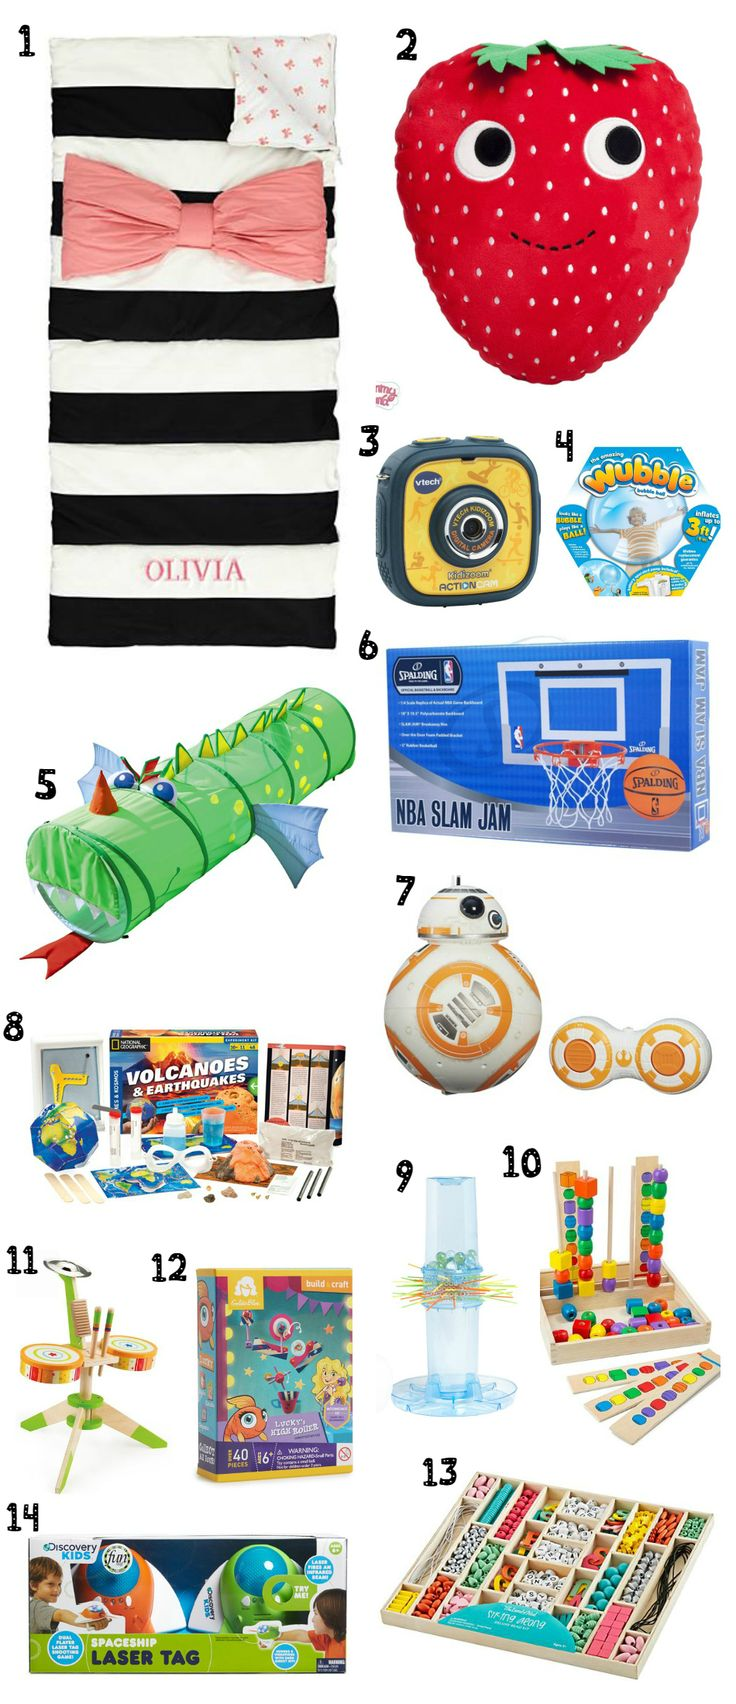 25 best Gift Guides images on Pinterest   Christmas presents, Frugal ...